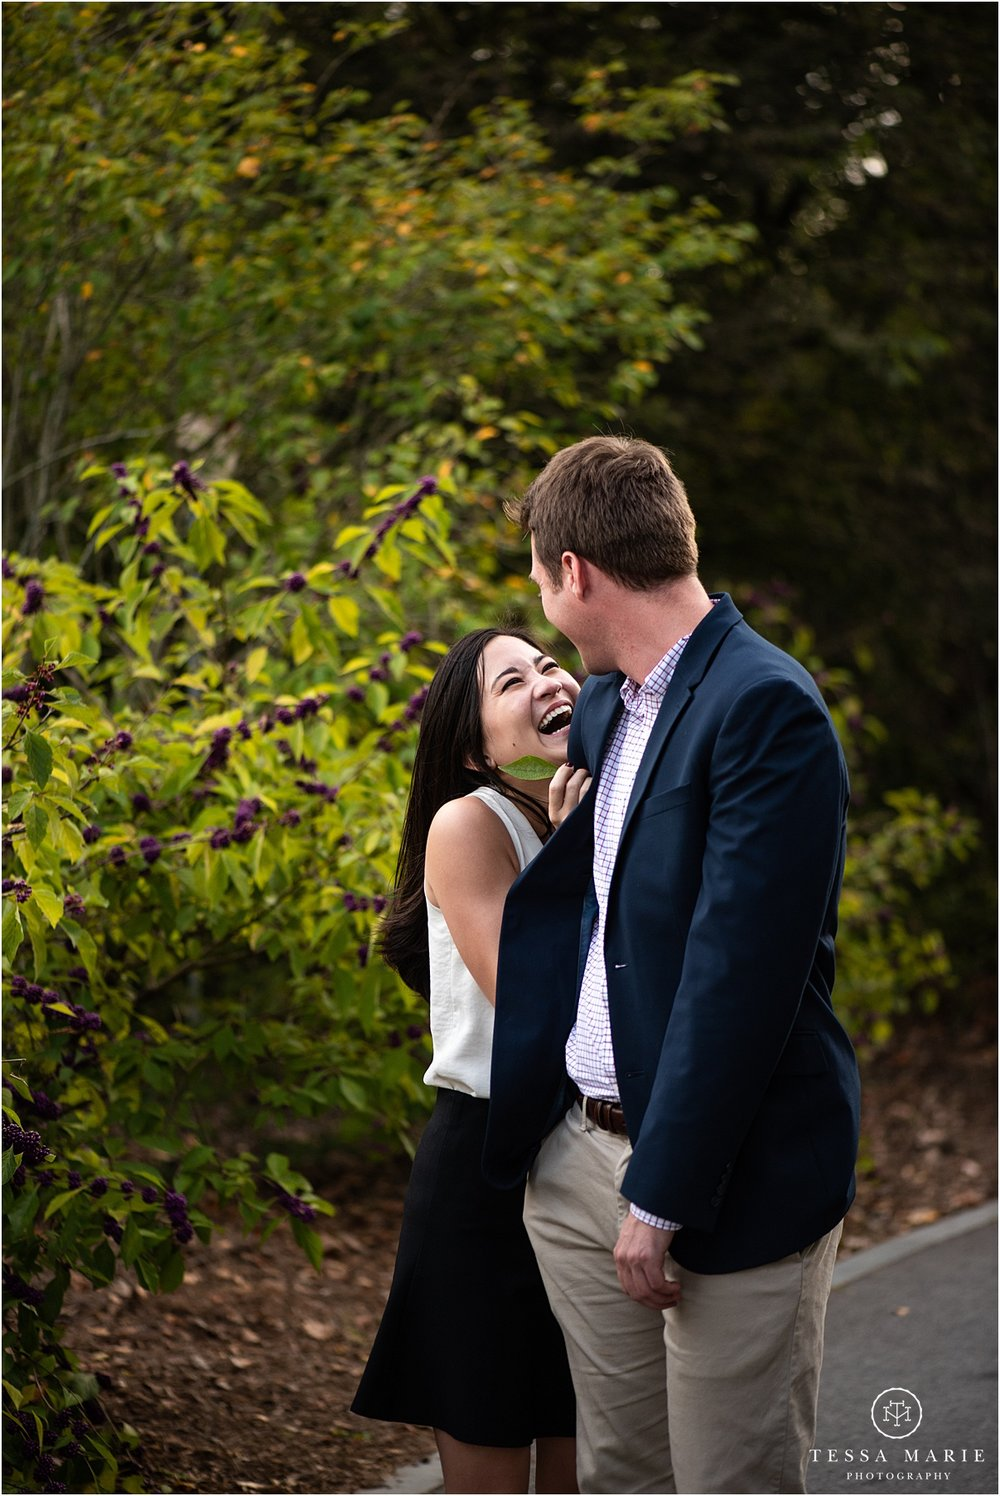 Tessa_marie_photography_wedding_photographer_engagement_pictures_piedmont_park_0067.jpg